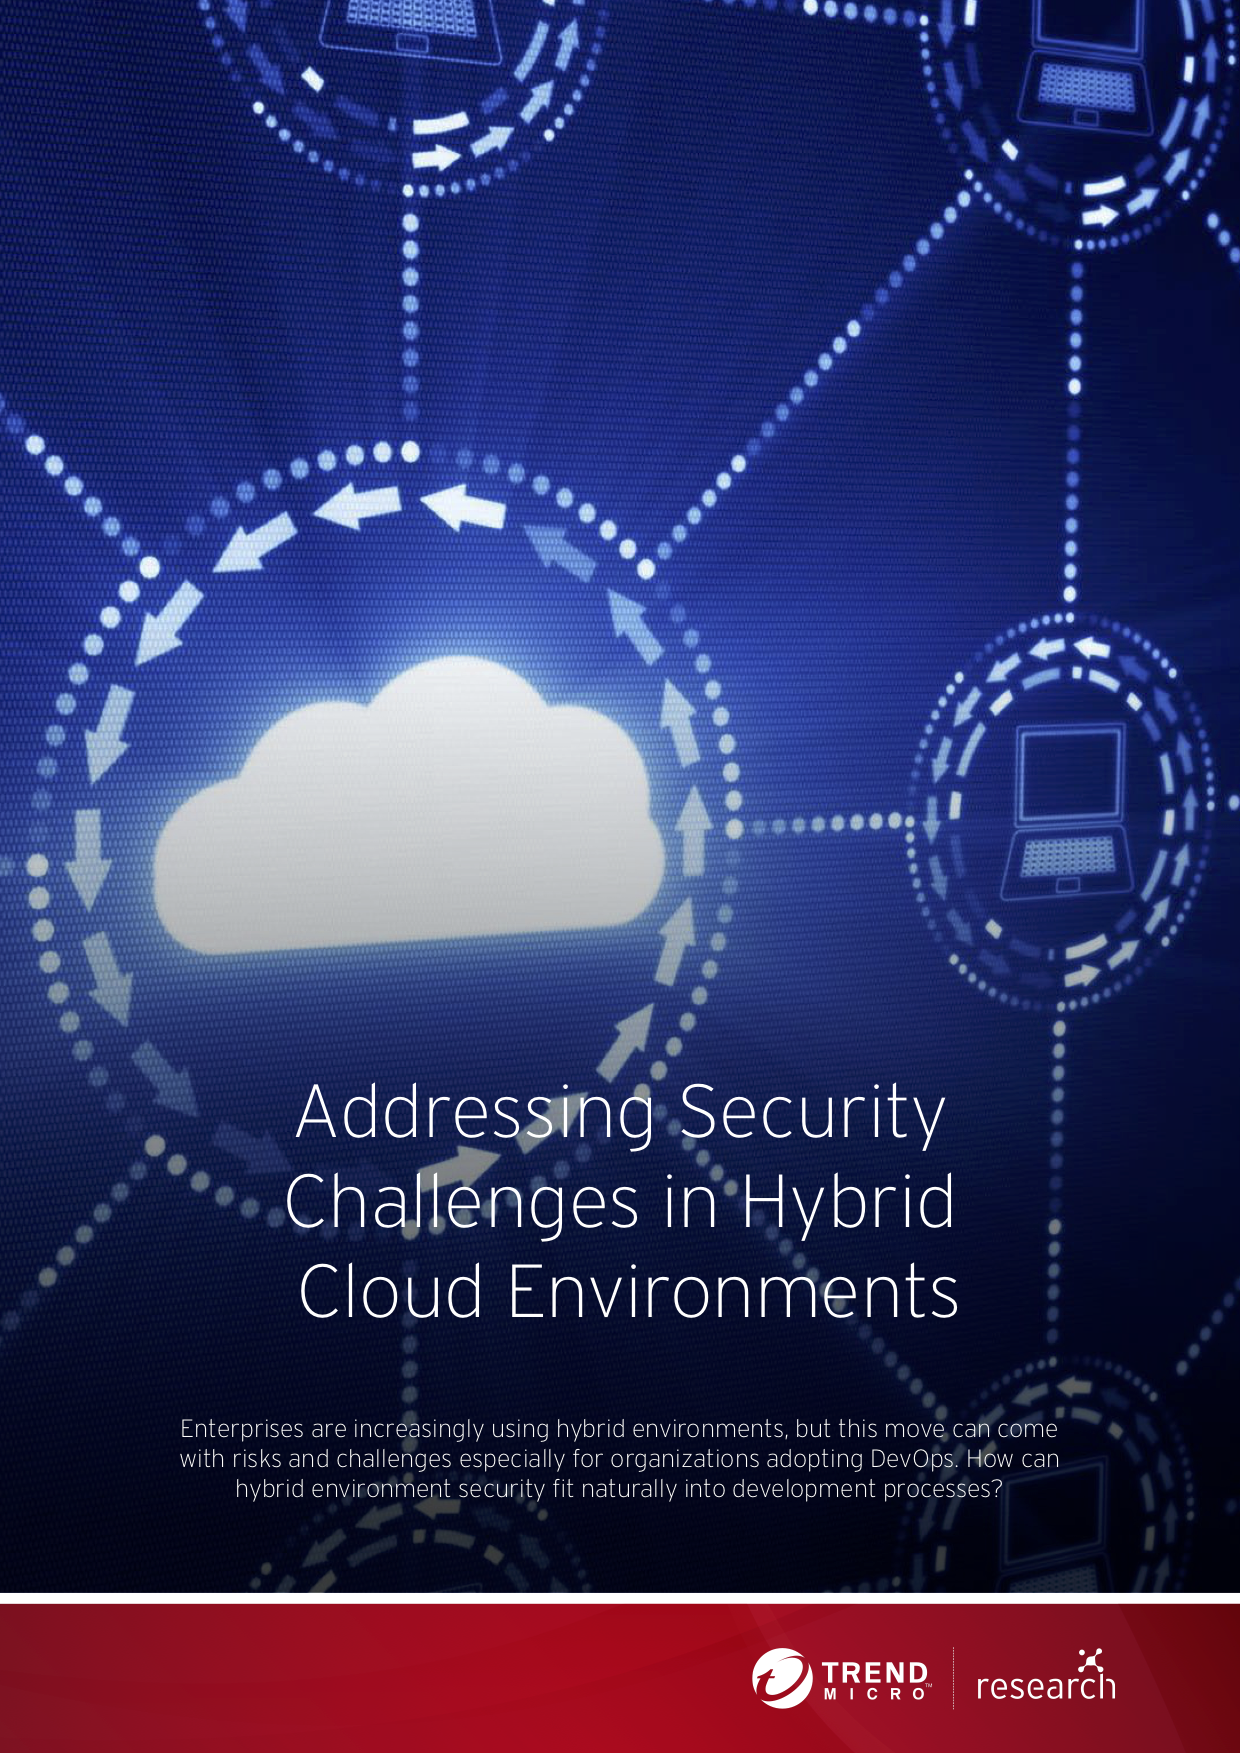 Addressing challenges in hybrid cloud security cover